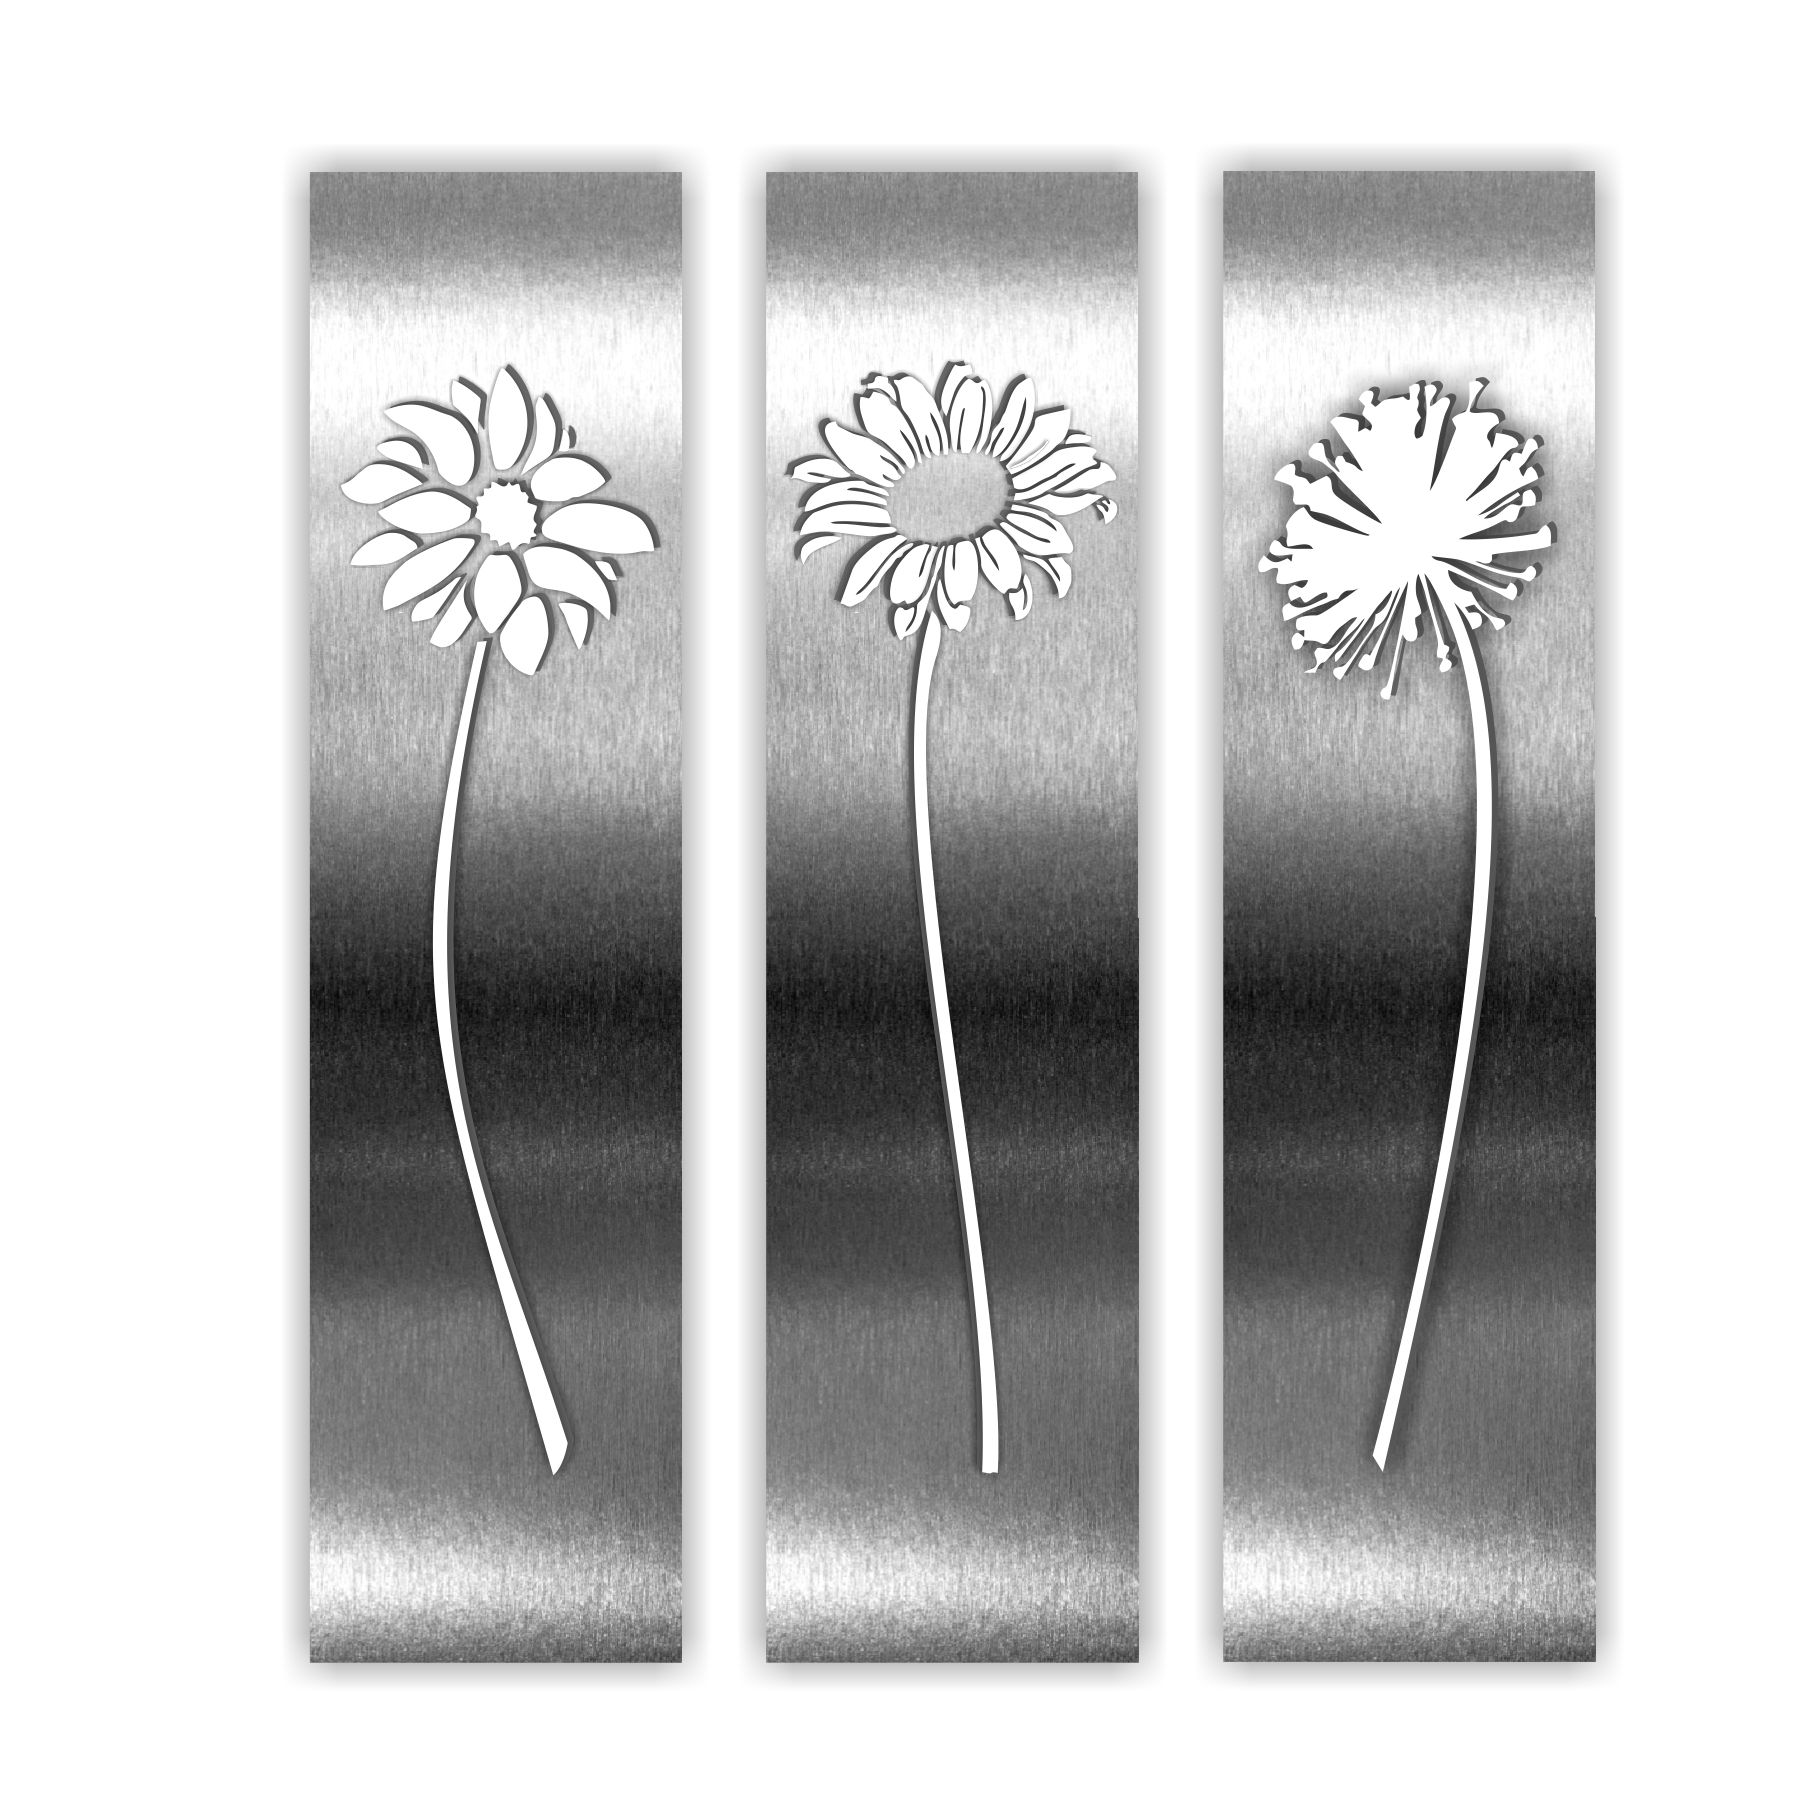 Premium 100 Recyclable Stainless Steel Artwork By Nz Designer Lisa Turley Flower Triptych Measures 100mm X 400mm X Steel Art Steel Wall Art Garden Wall Art